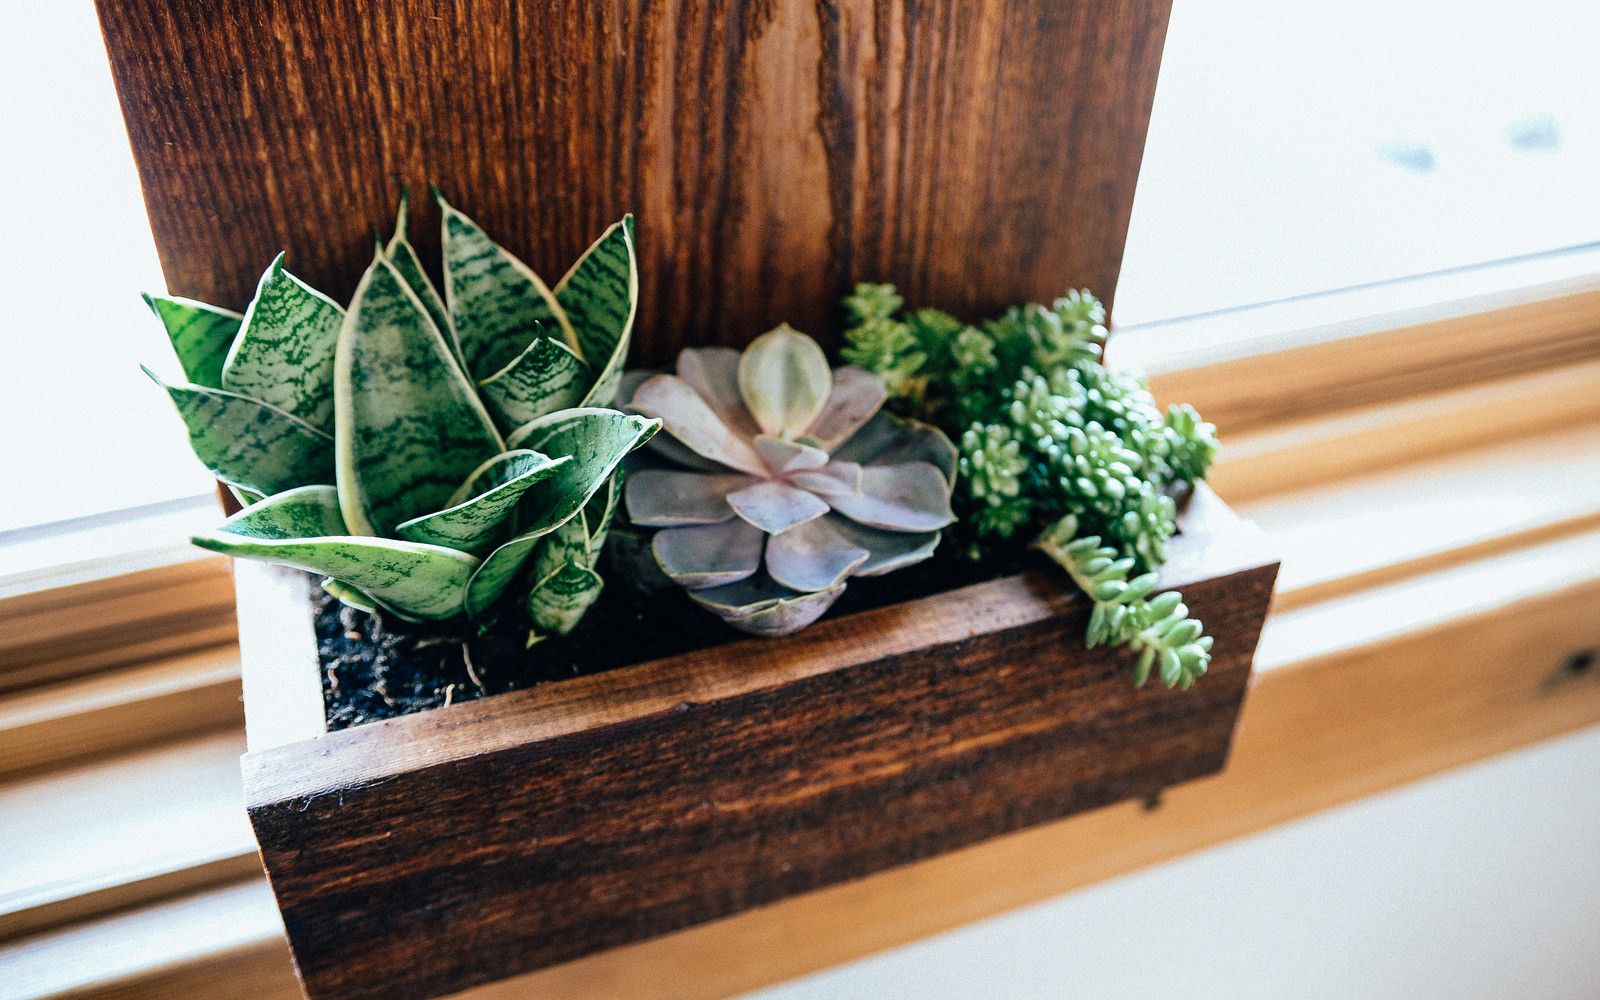 DunnDIY-SeattleWA-AddressNumberWallPlanter-17